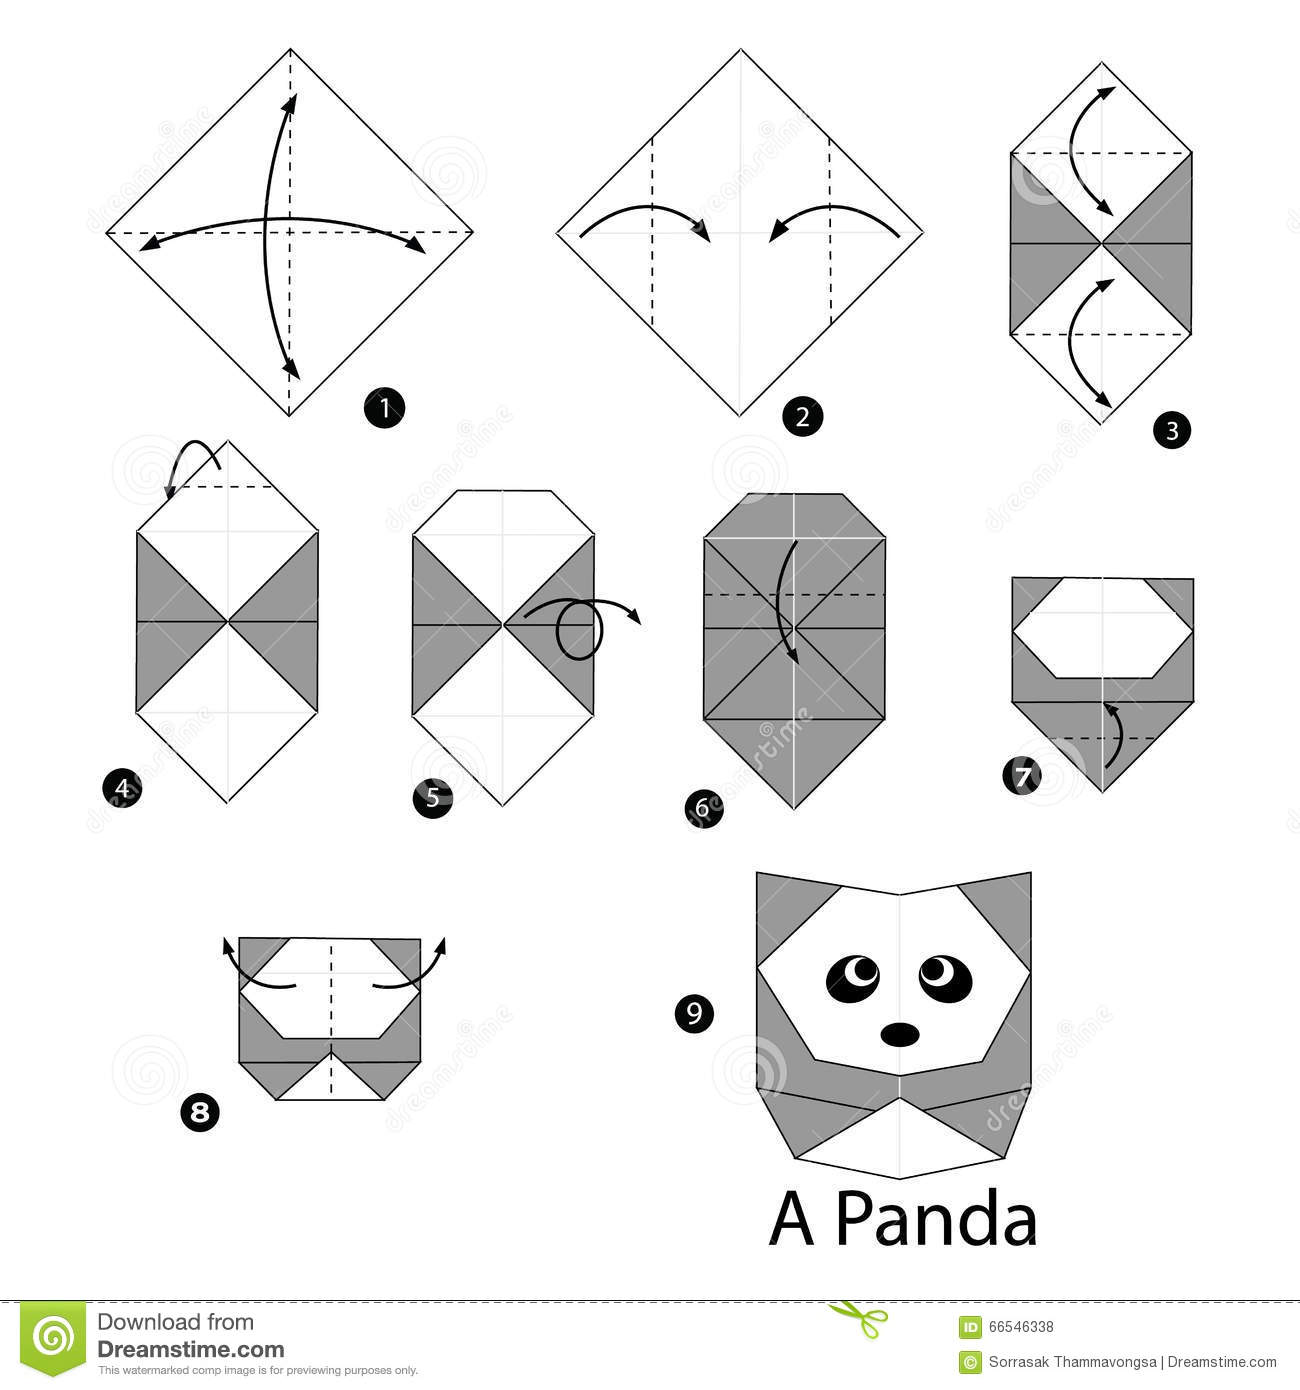 instructions tape par tape comment faire le panda d 39 origami illustration de vecteur image. Black Bedroom Furniture Sets. Home Design Ideas